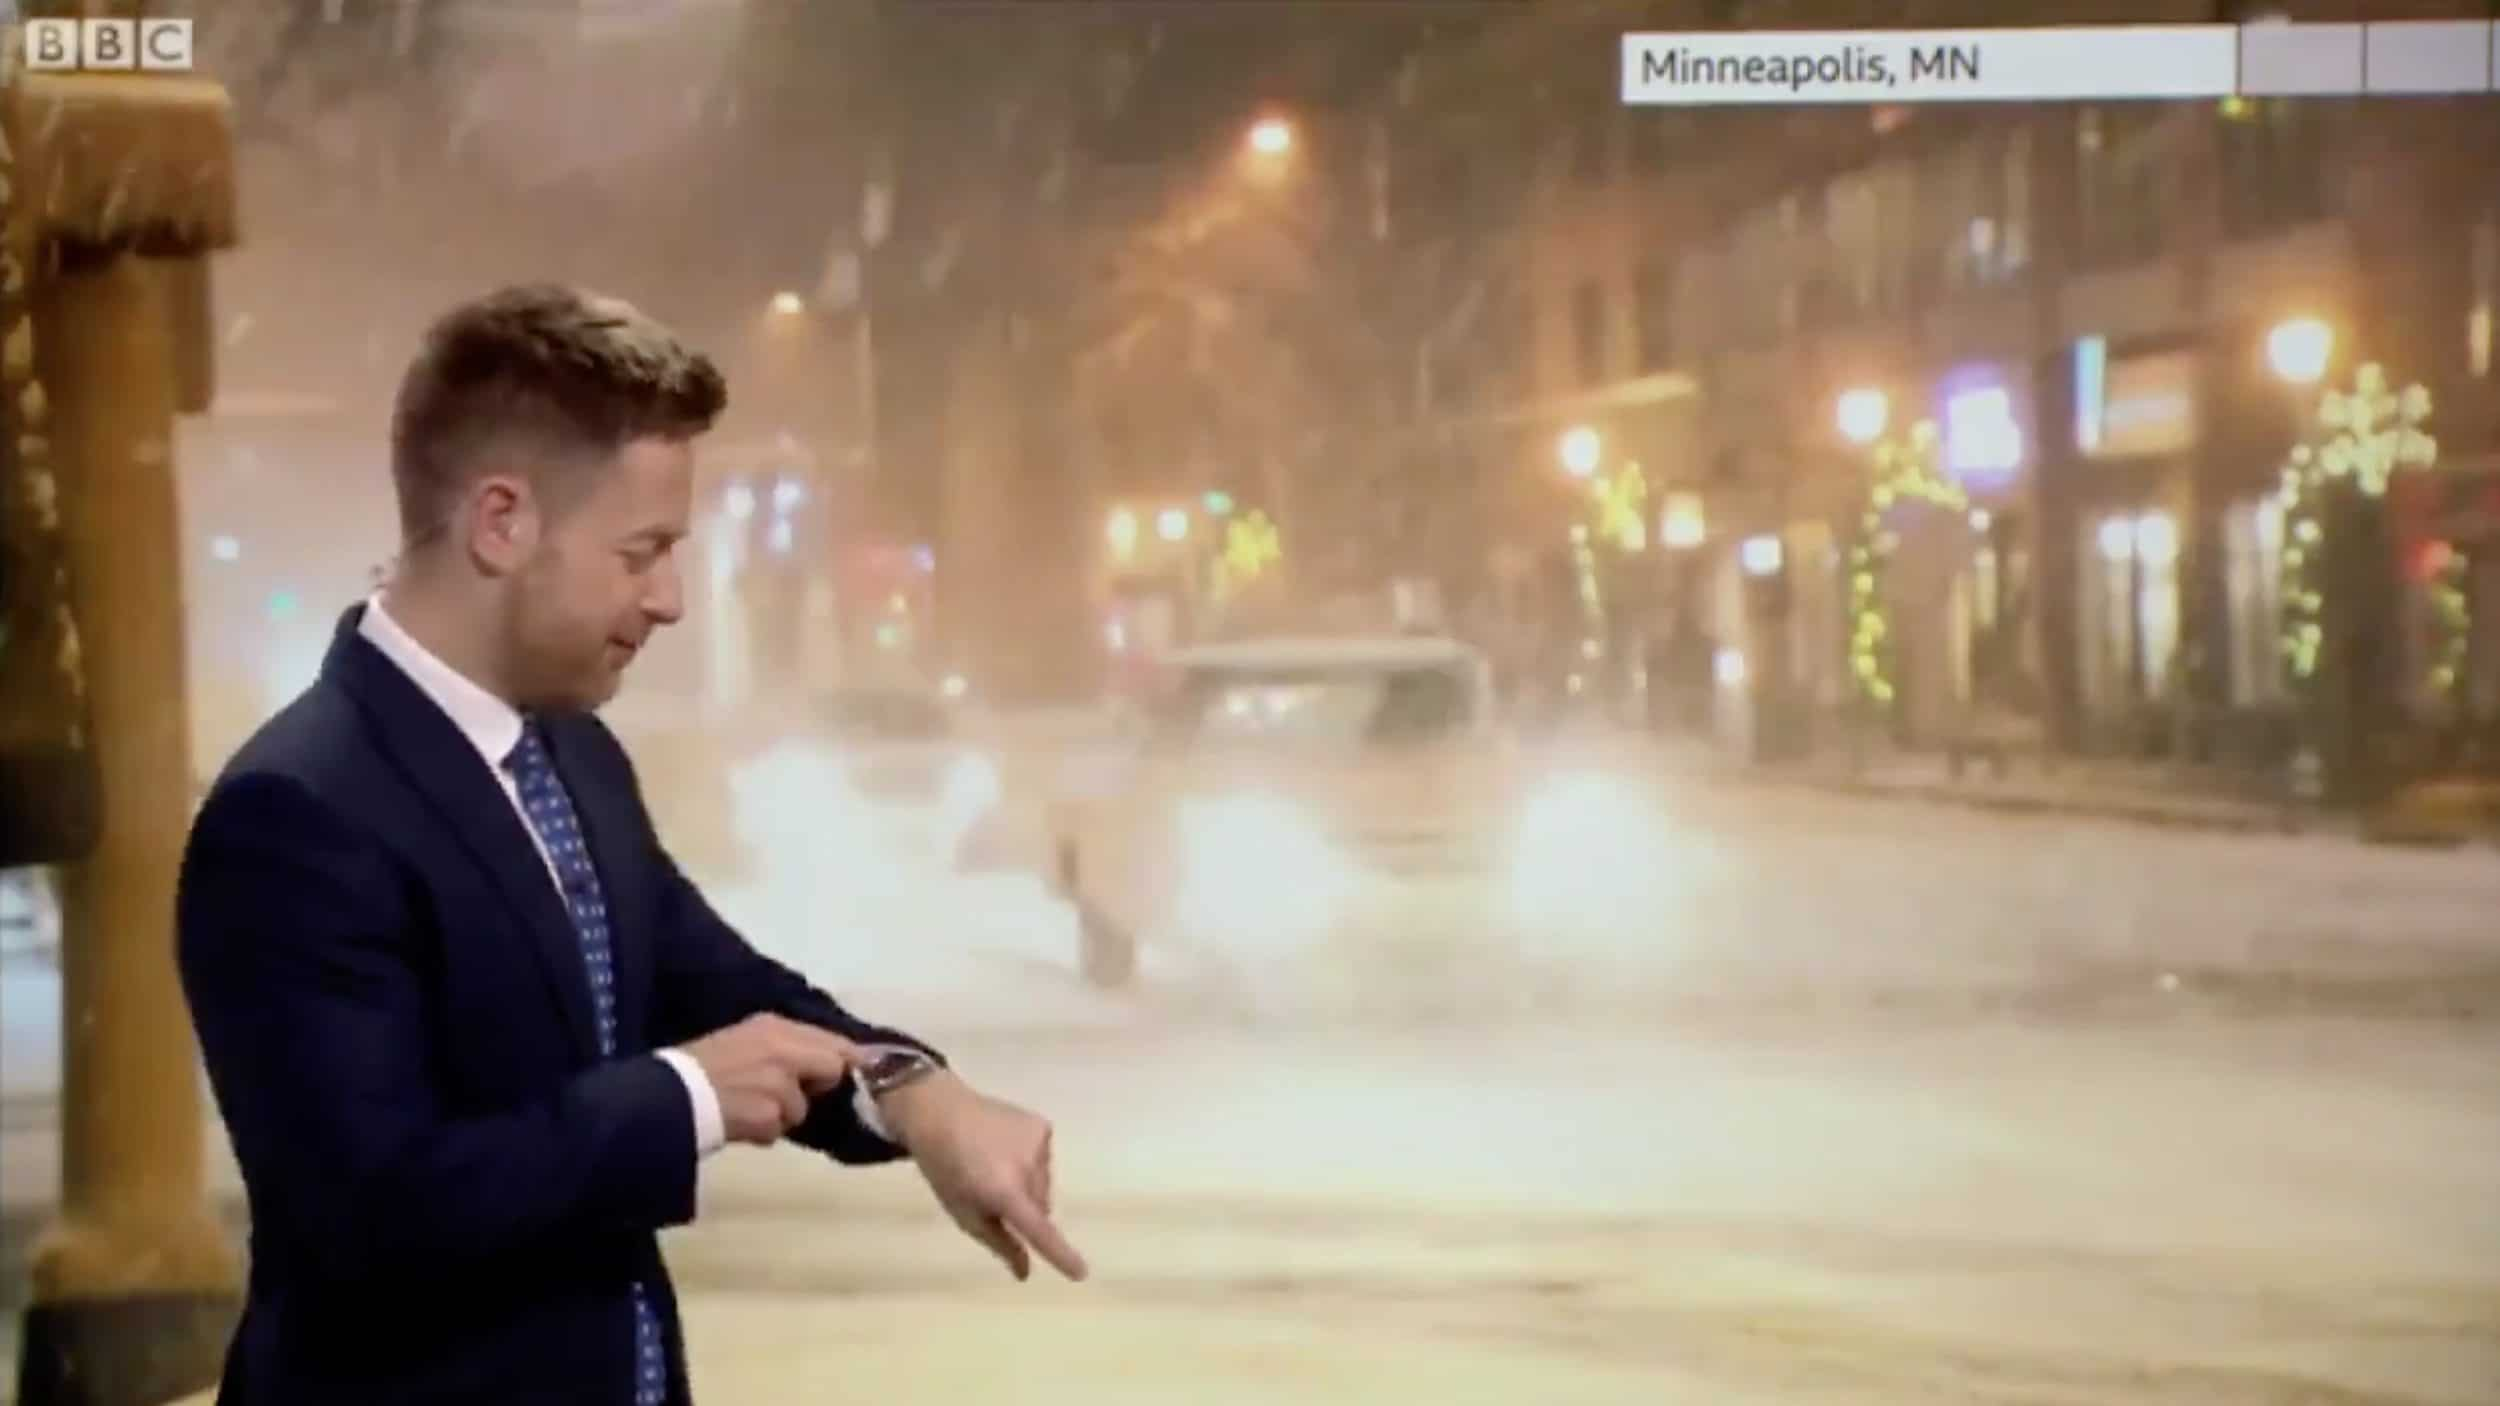 This is the weather guy on TV with Siri issue.